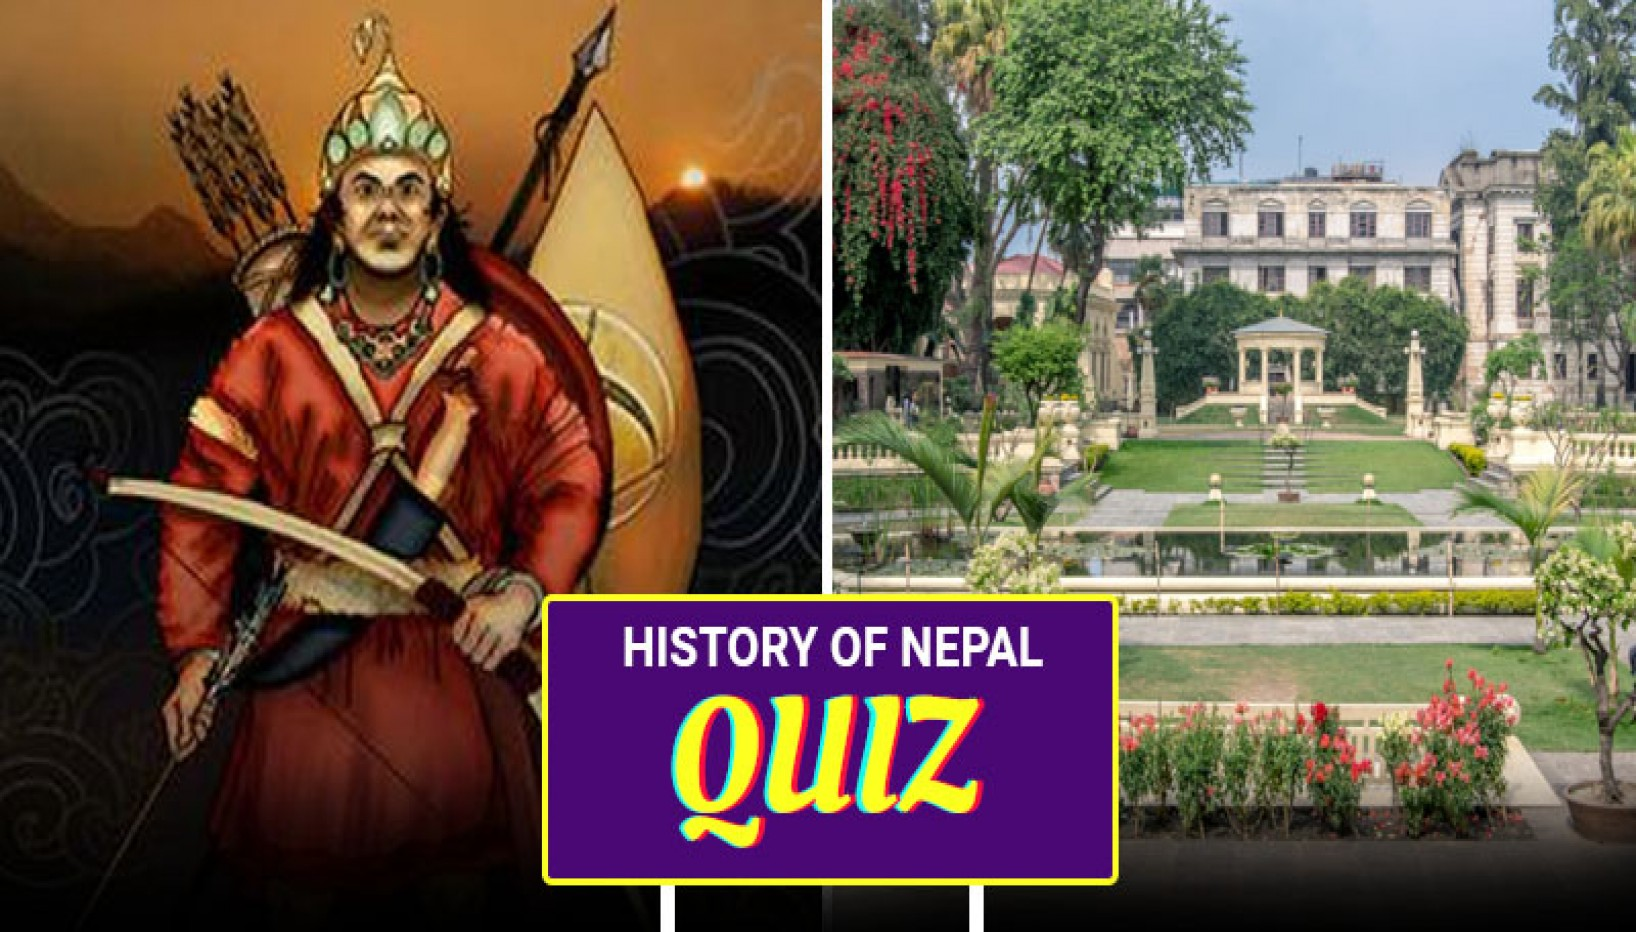 Only Nepali History Nerds Can Score More Than 8 In This Basic History Quiz